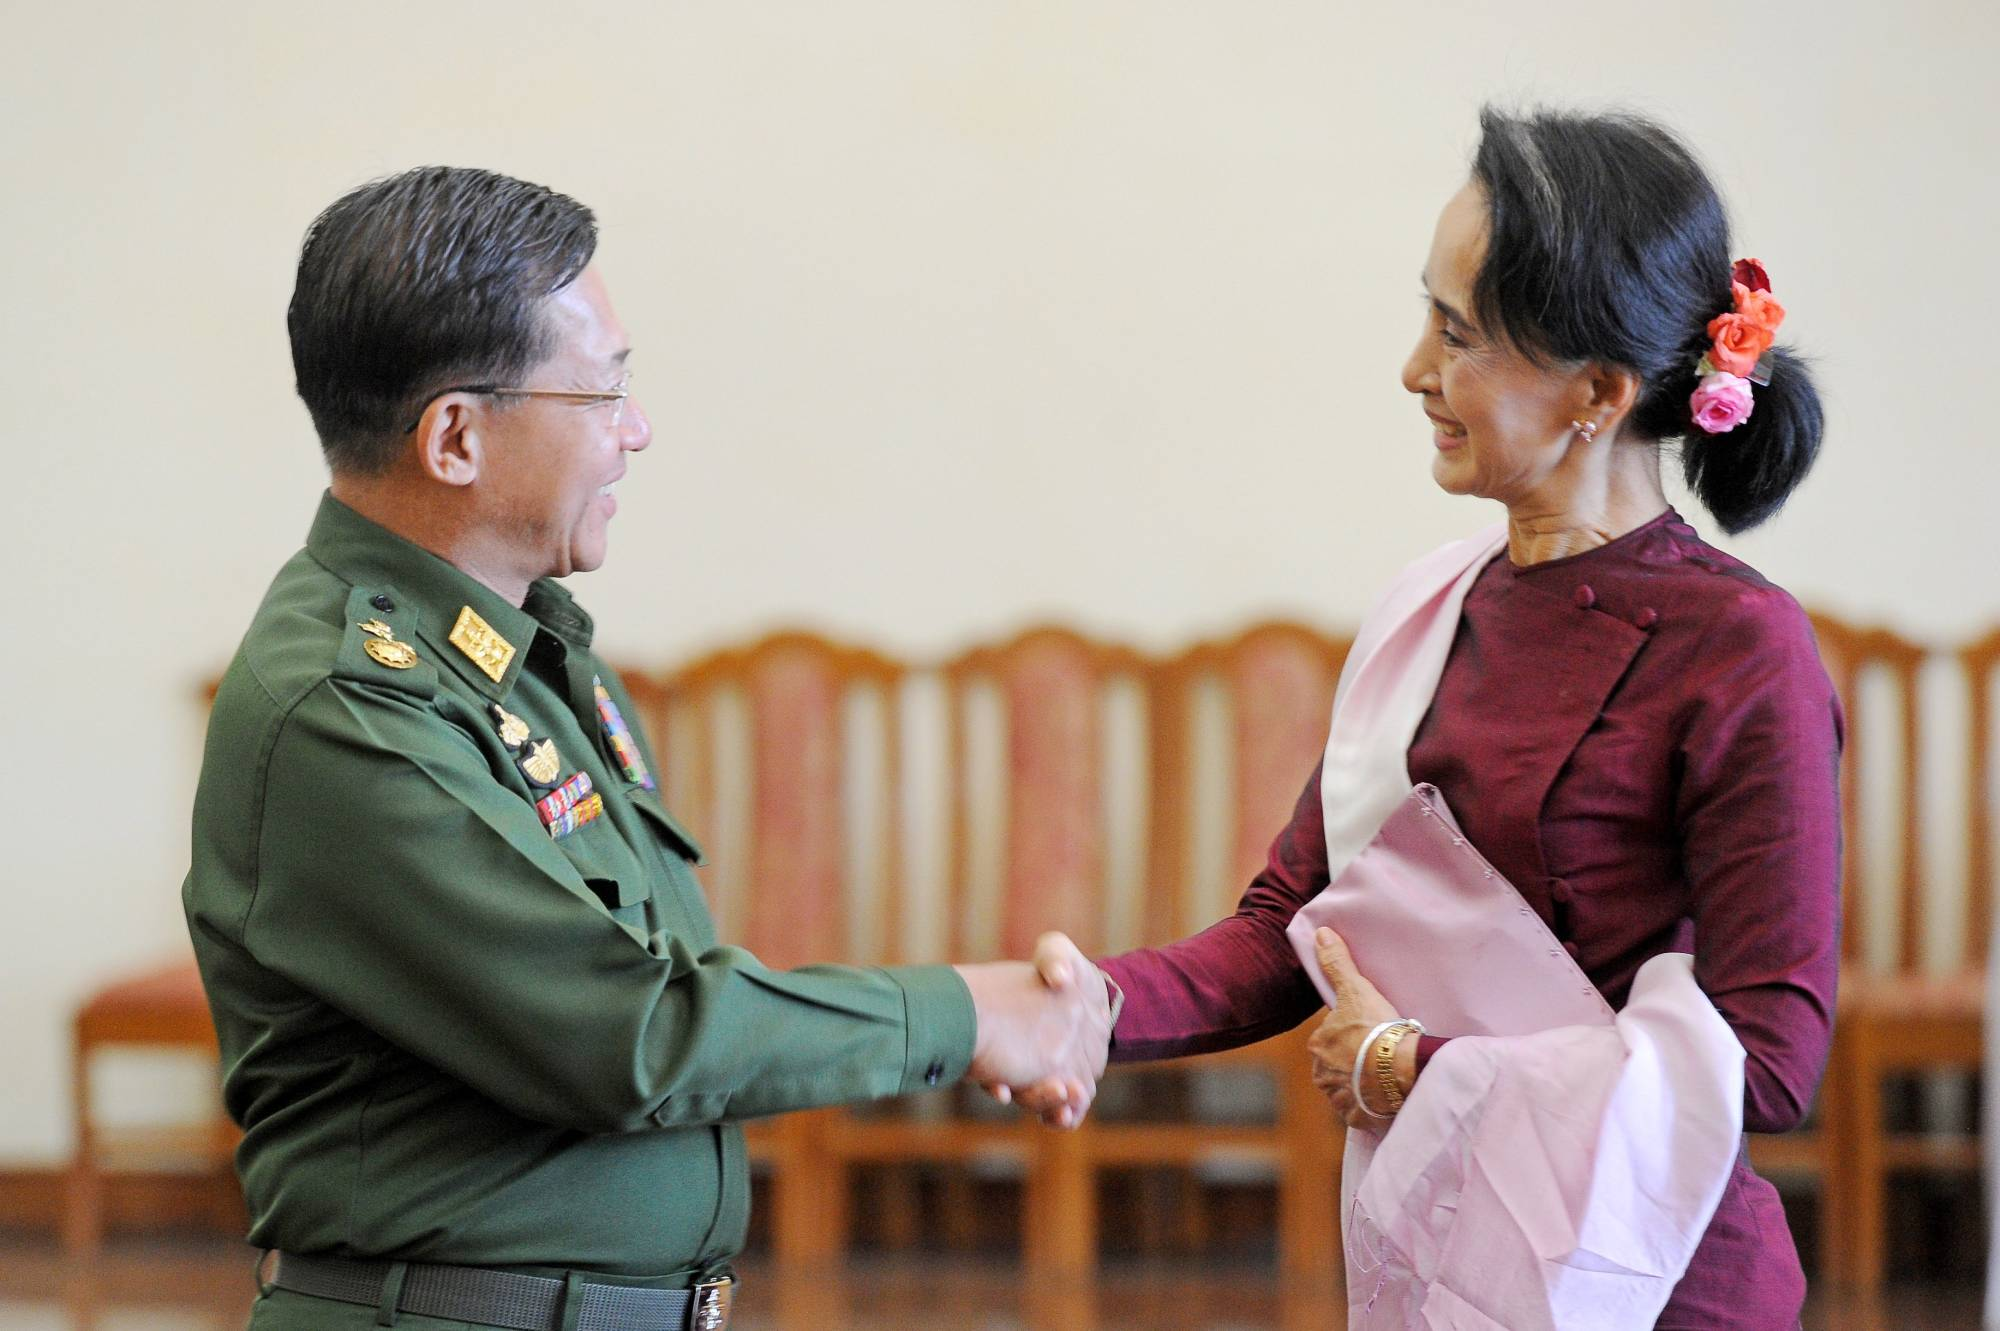 Myanmar military chief Gen. Min Aung Hlaing and National League for Democracy party leader Aung San Suu Kyi shake hands after their meeting at the commander in-chief's office in Naypyidaw, Myanmar, in December 2015. | AFP-JIJI